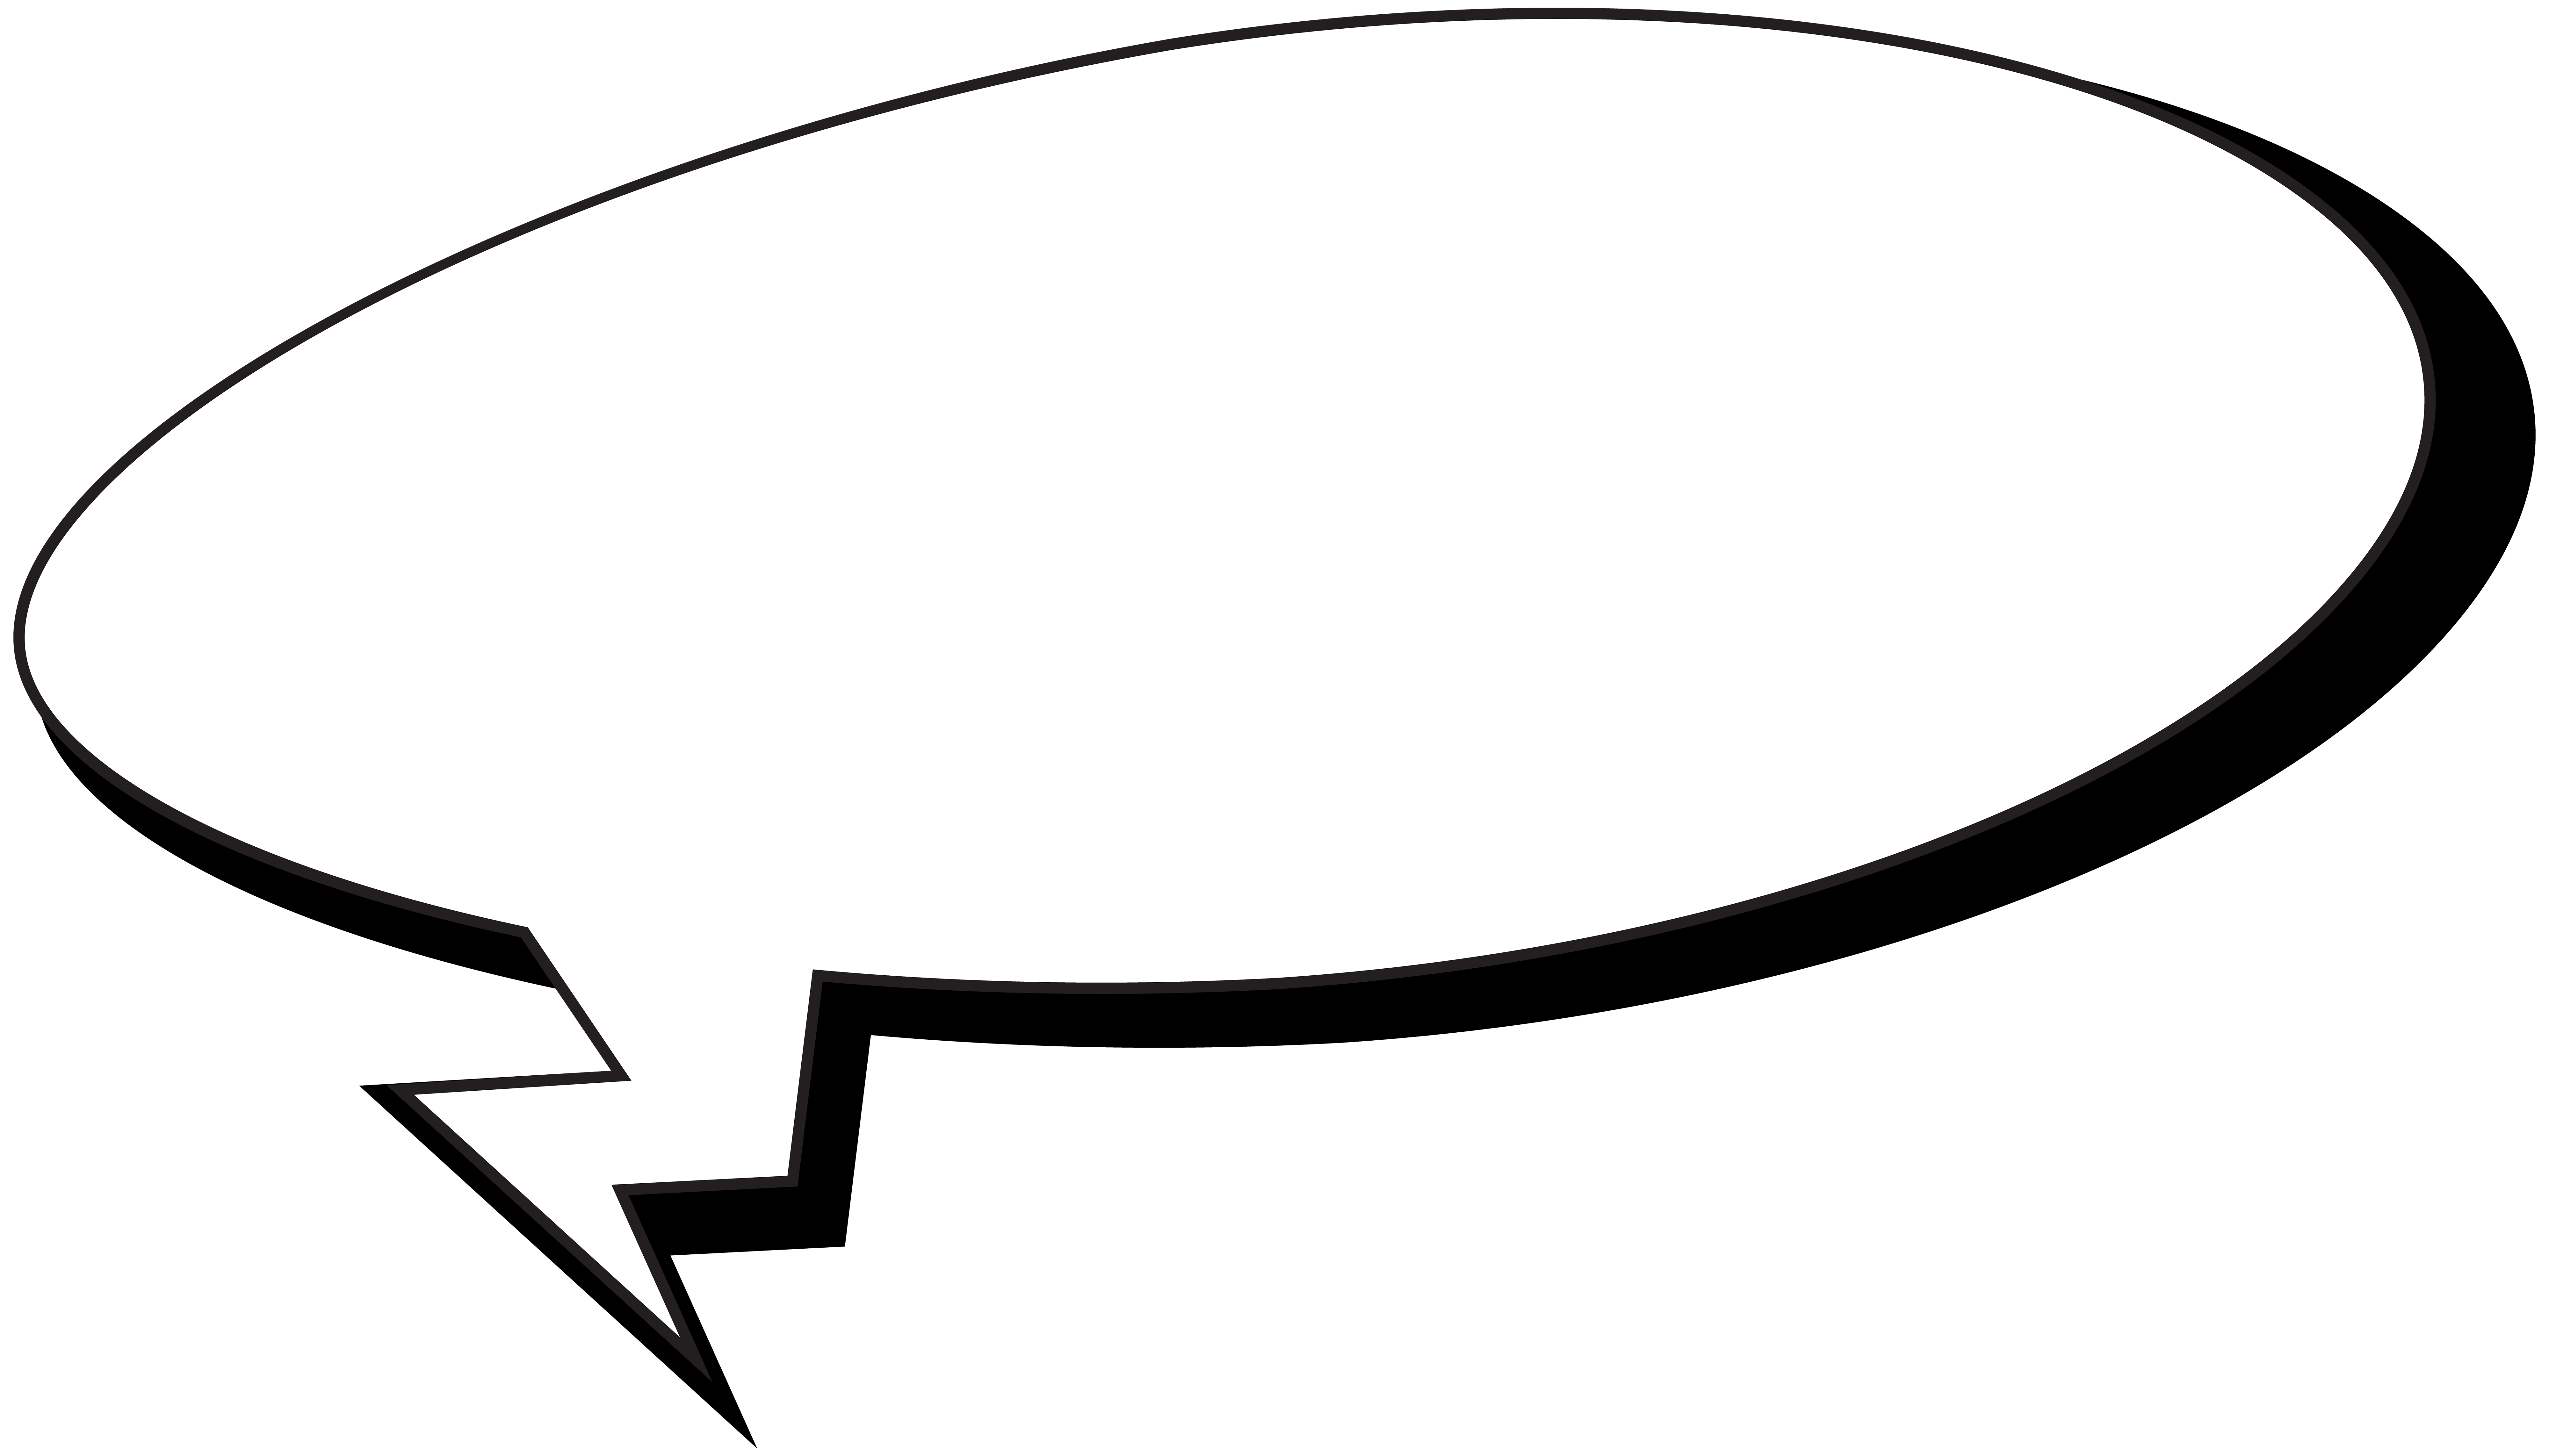 Comics speech bubble png. Photography clipart photo album